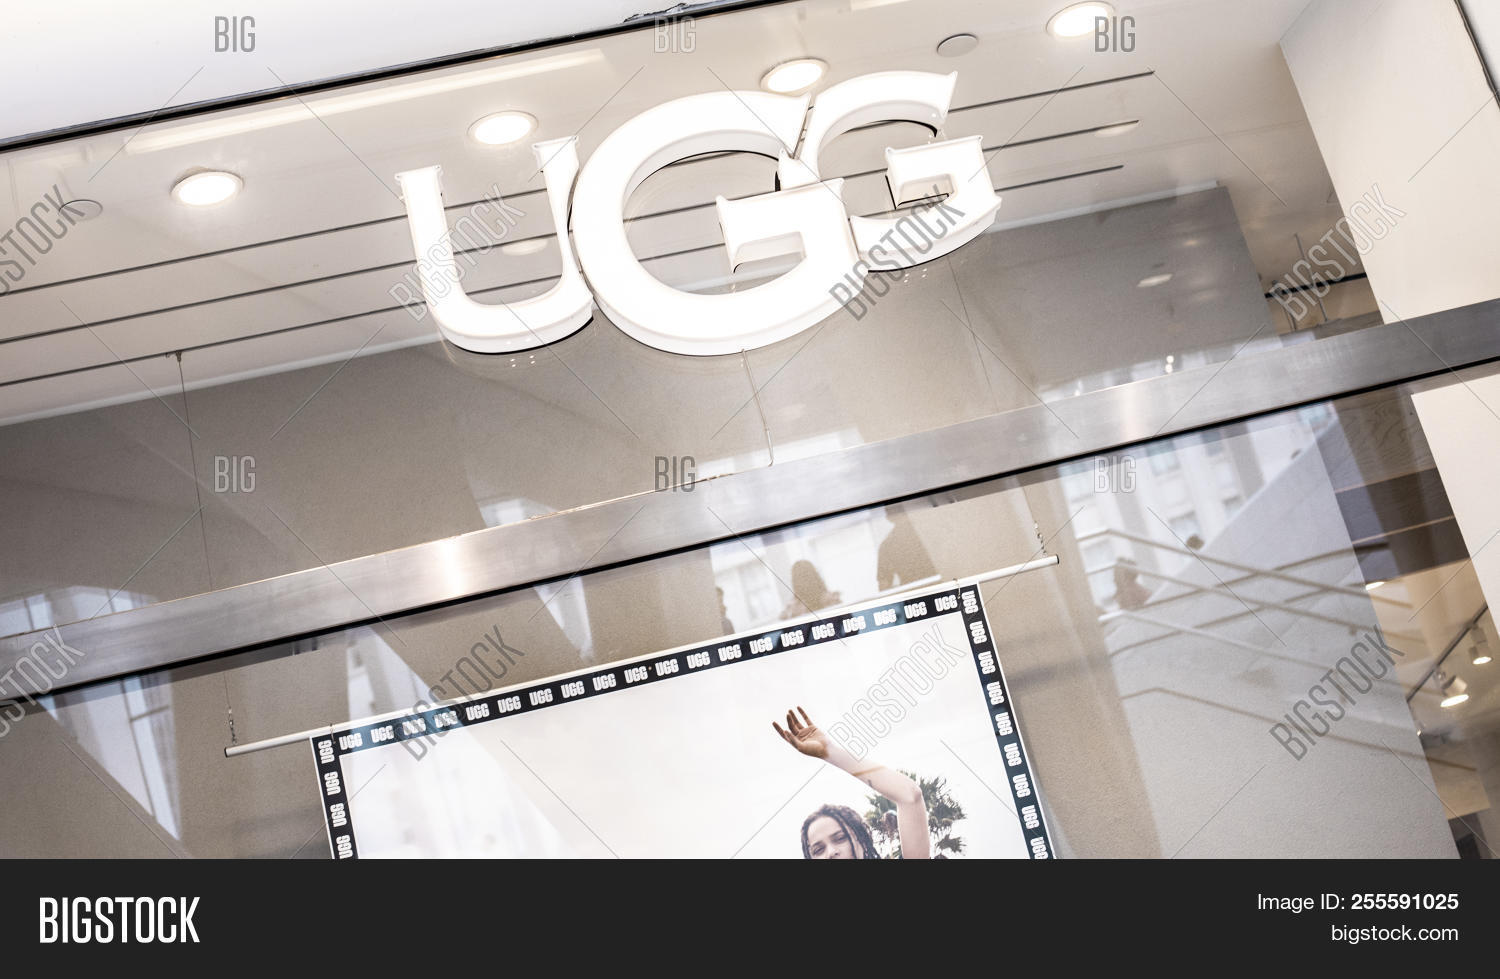 ugg boots store new york city